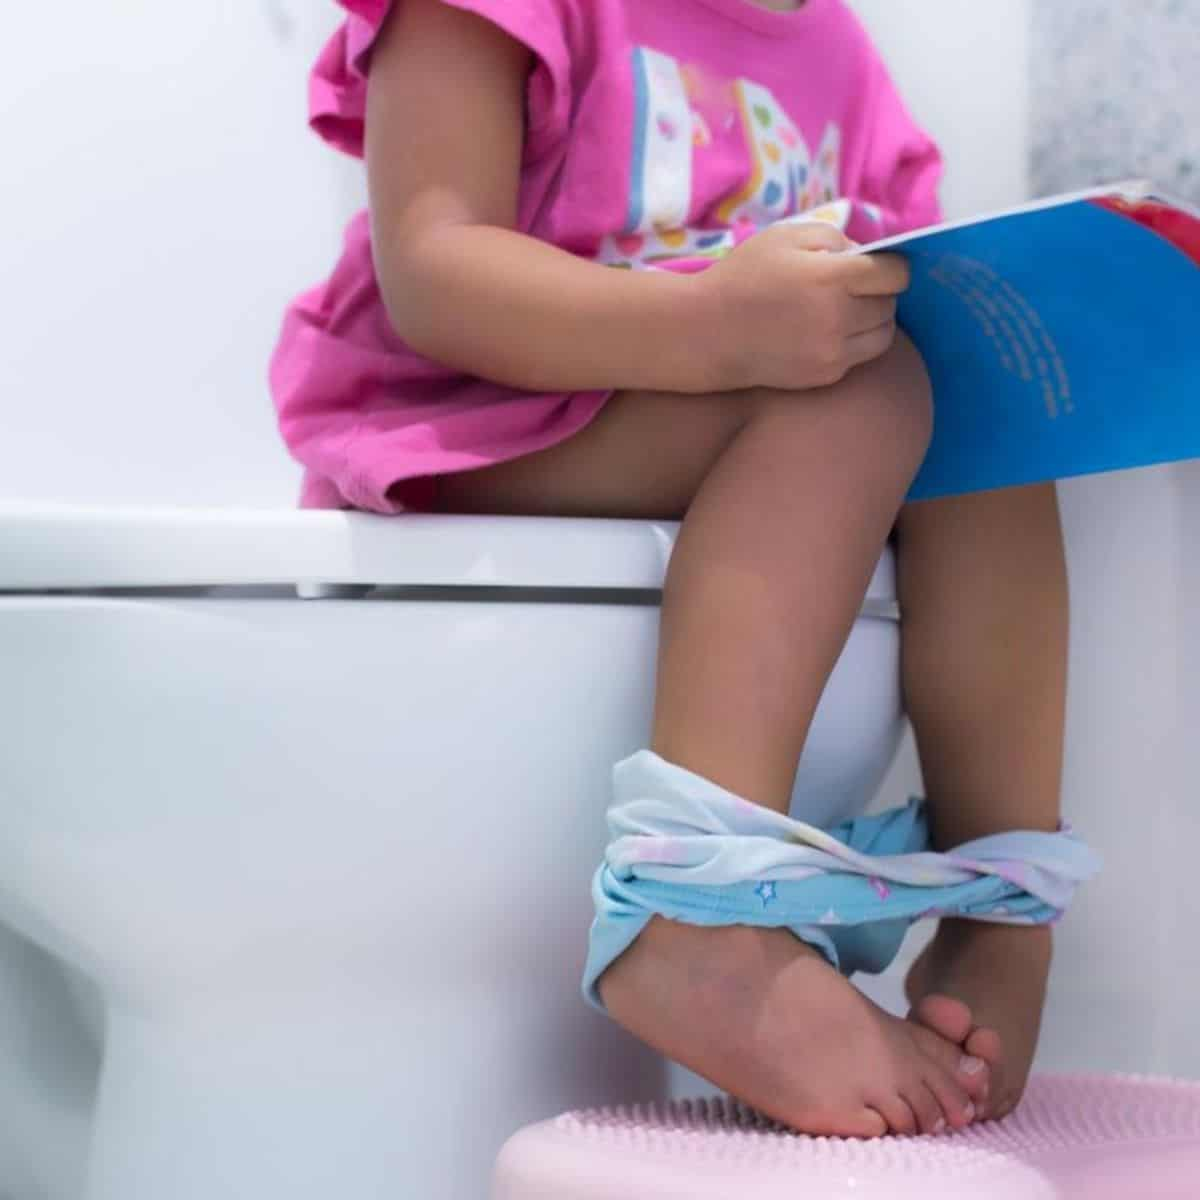 little girl is sitting on a toilet with a book in her hands